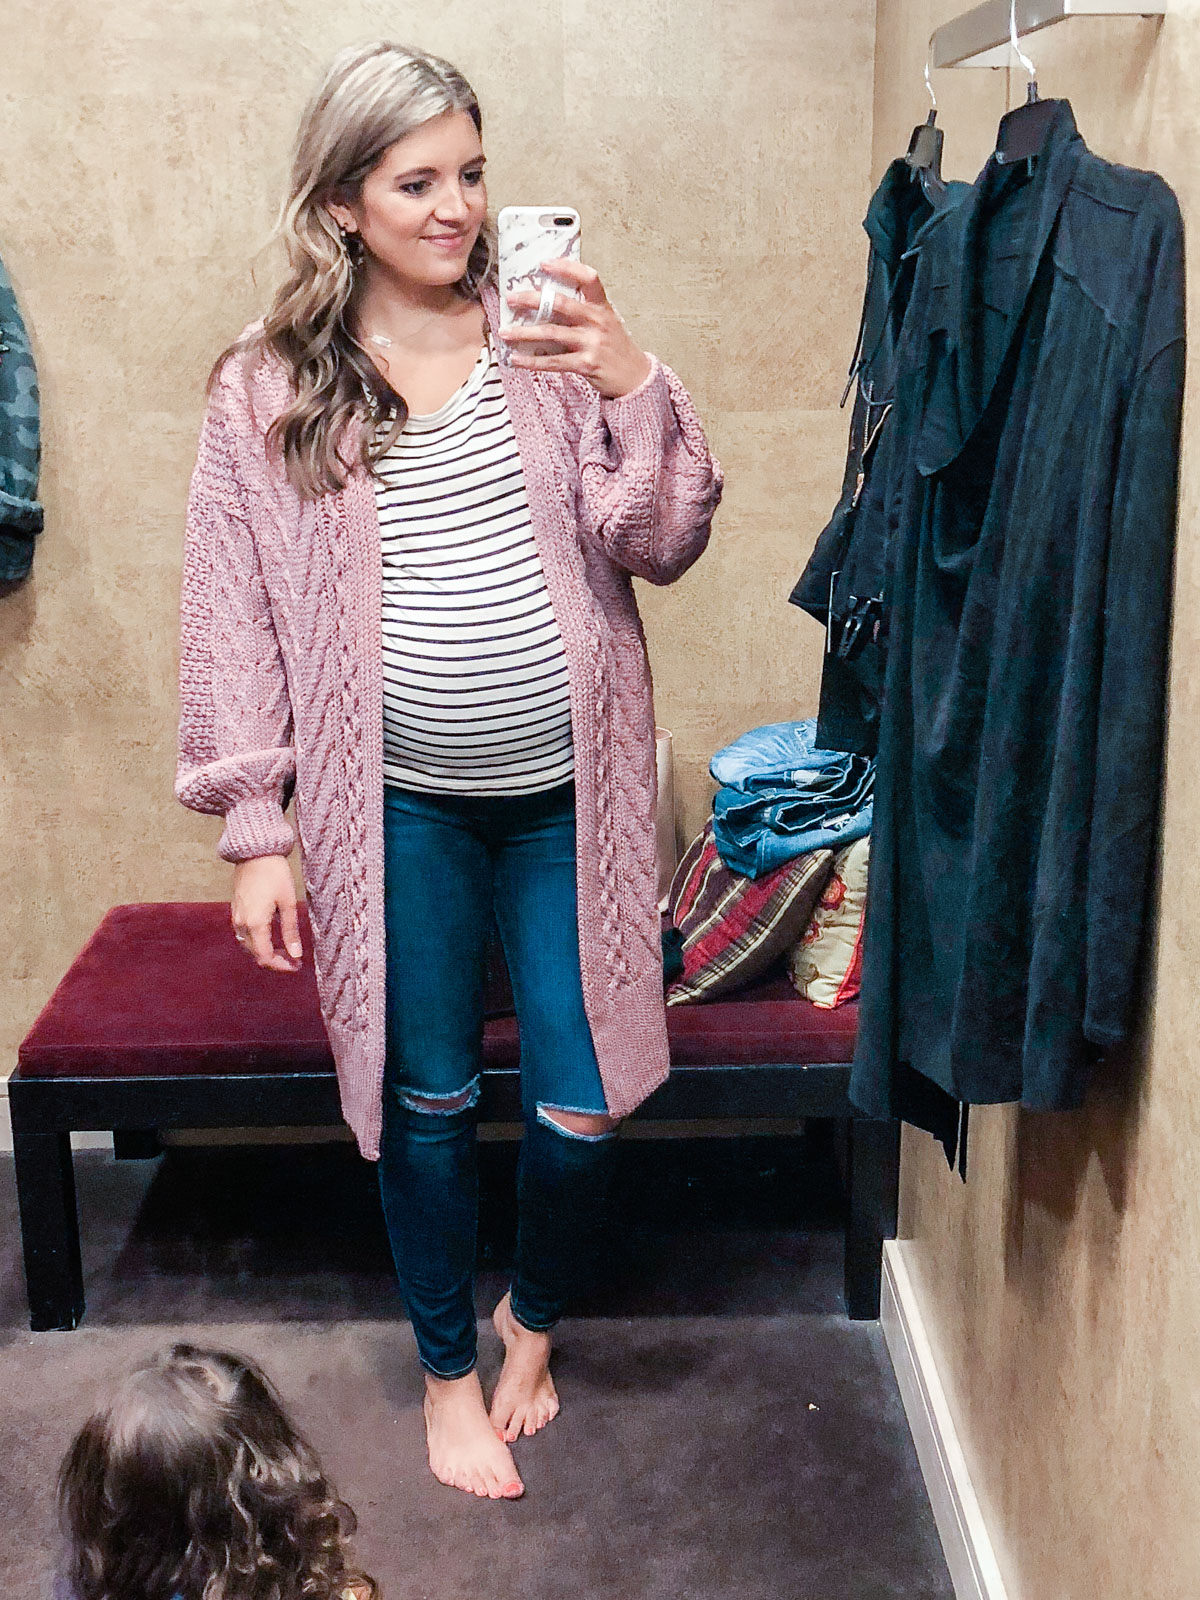 topshop long cardigan - Nordstrom anniversary sale 2018 try-on session: over 25 items reviewed for fit and size!   bylaurenm.com